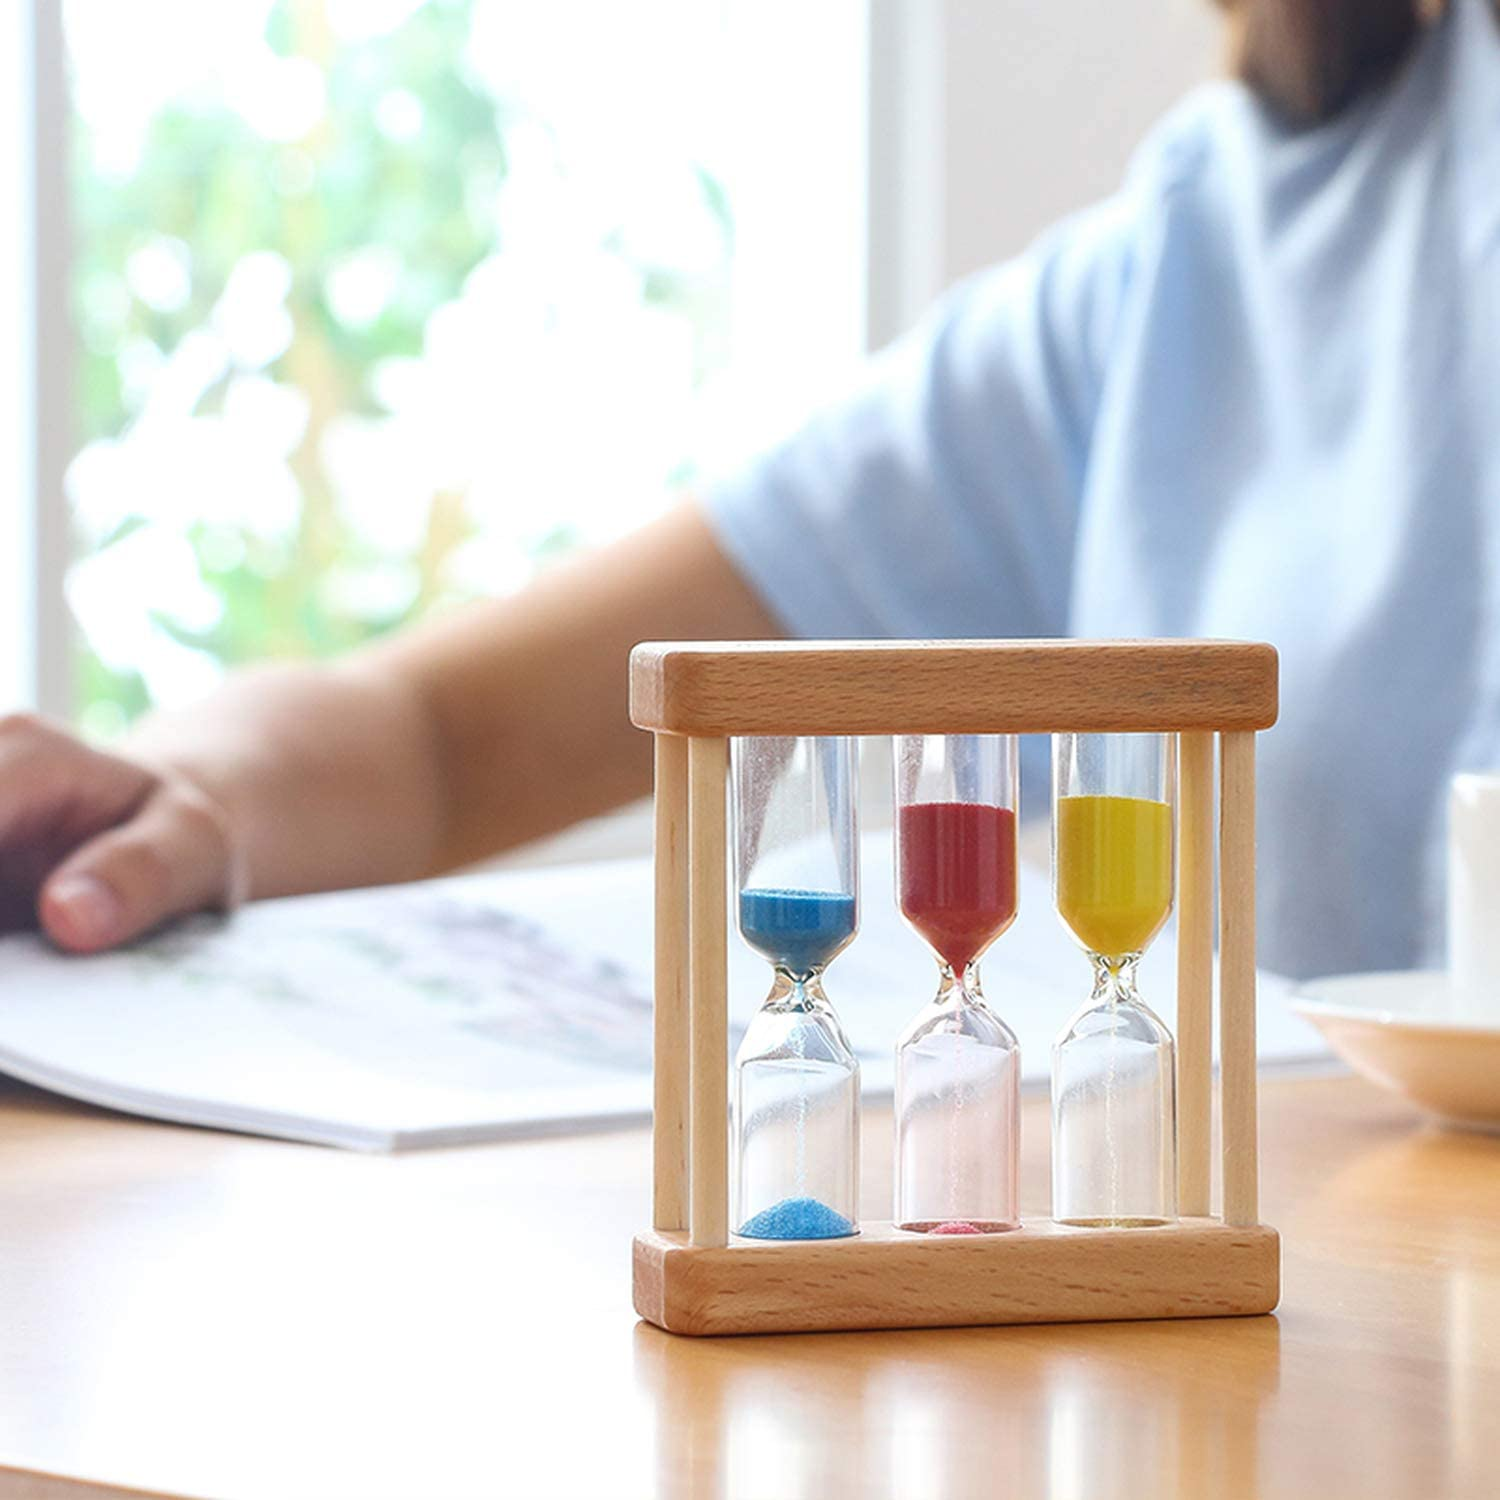 1//3//5 Minutes Glass Hourglass Wood Frame Sand Timer Clock Home Decor Birthday Day Gift,Blue red Yellow,1pcs